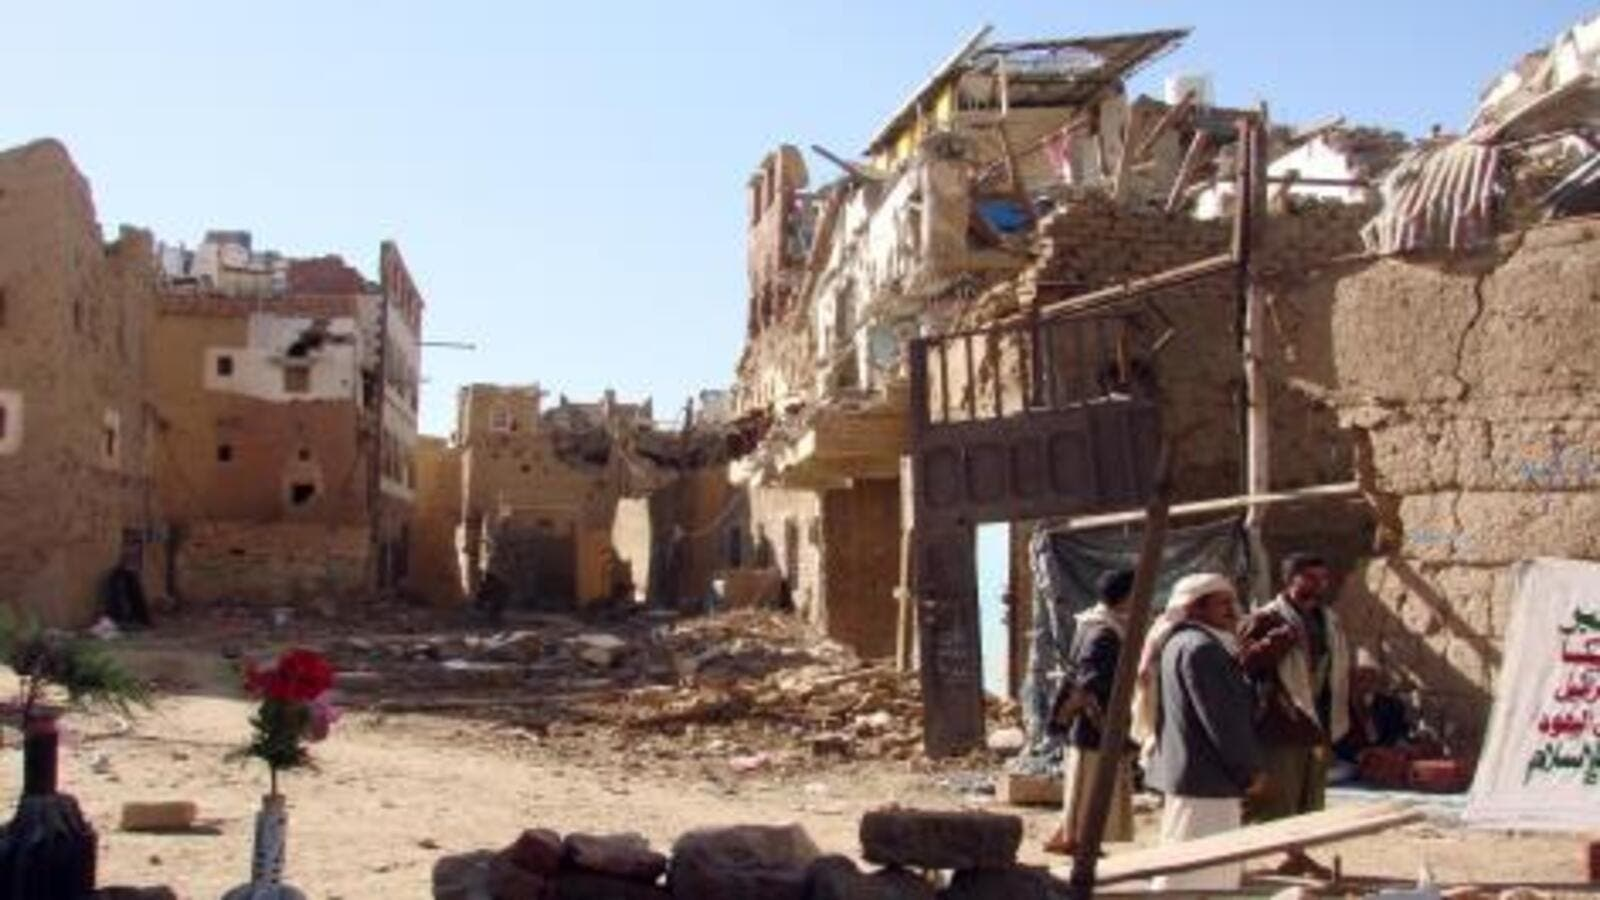 Five airstrikes on Monday hit a hospital run by Medecins Sans Frontieres in Saada, a Houthi stronghold and designated military target by Saudi Arabia. (AFP/File)